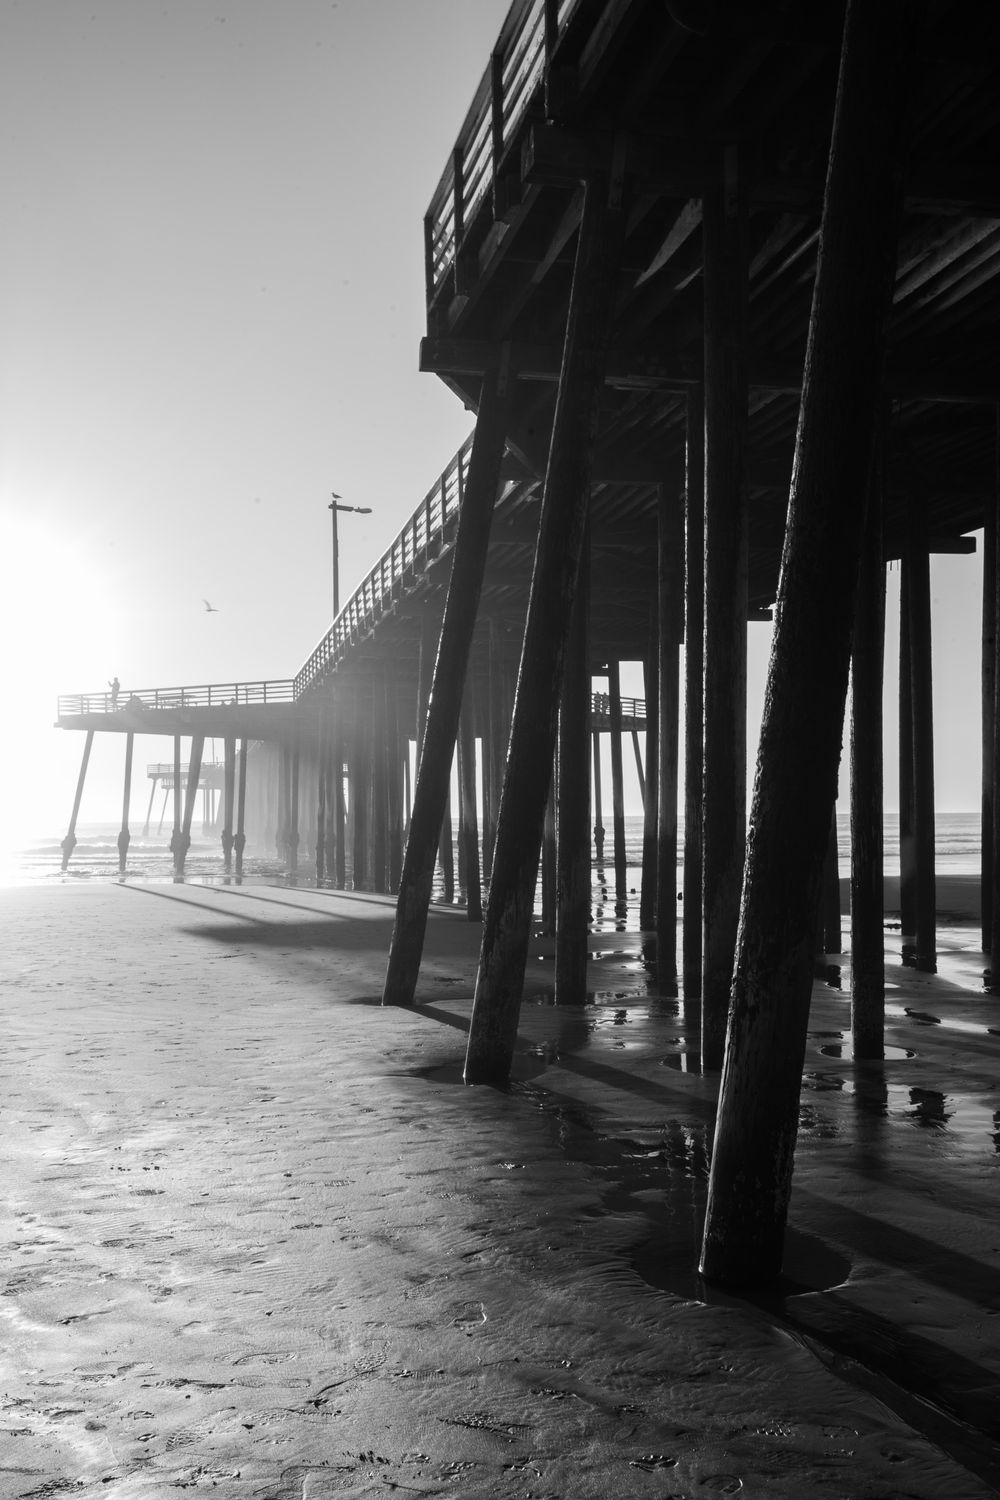 Pier review  - image 1 - student project